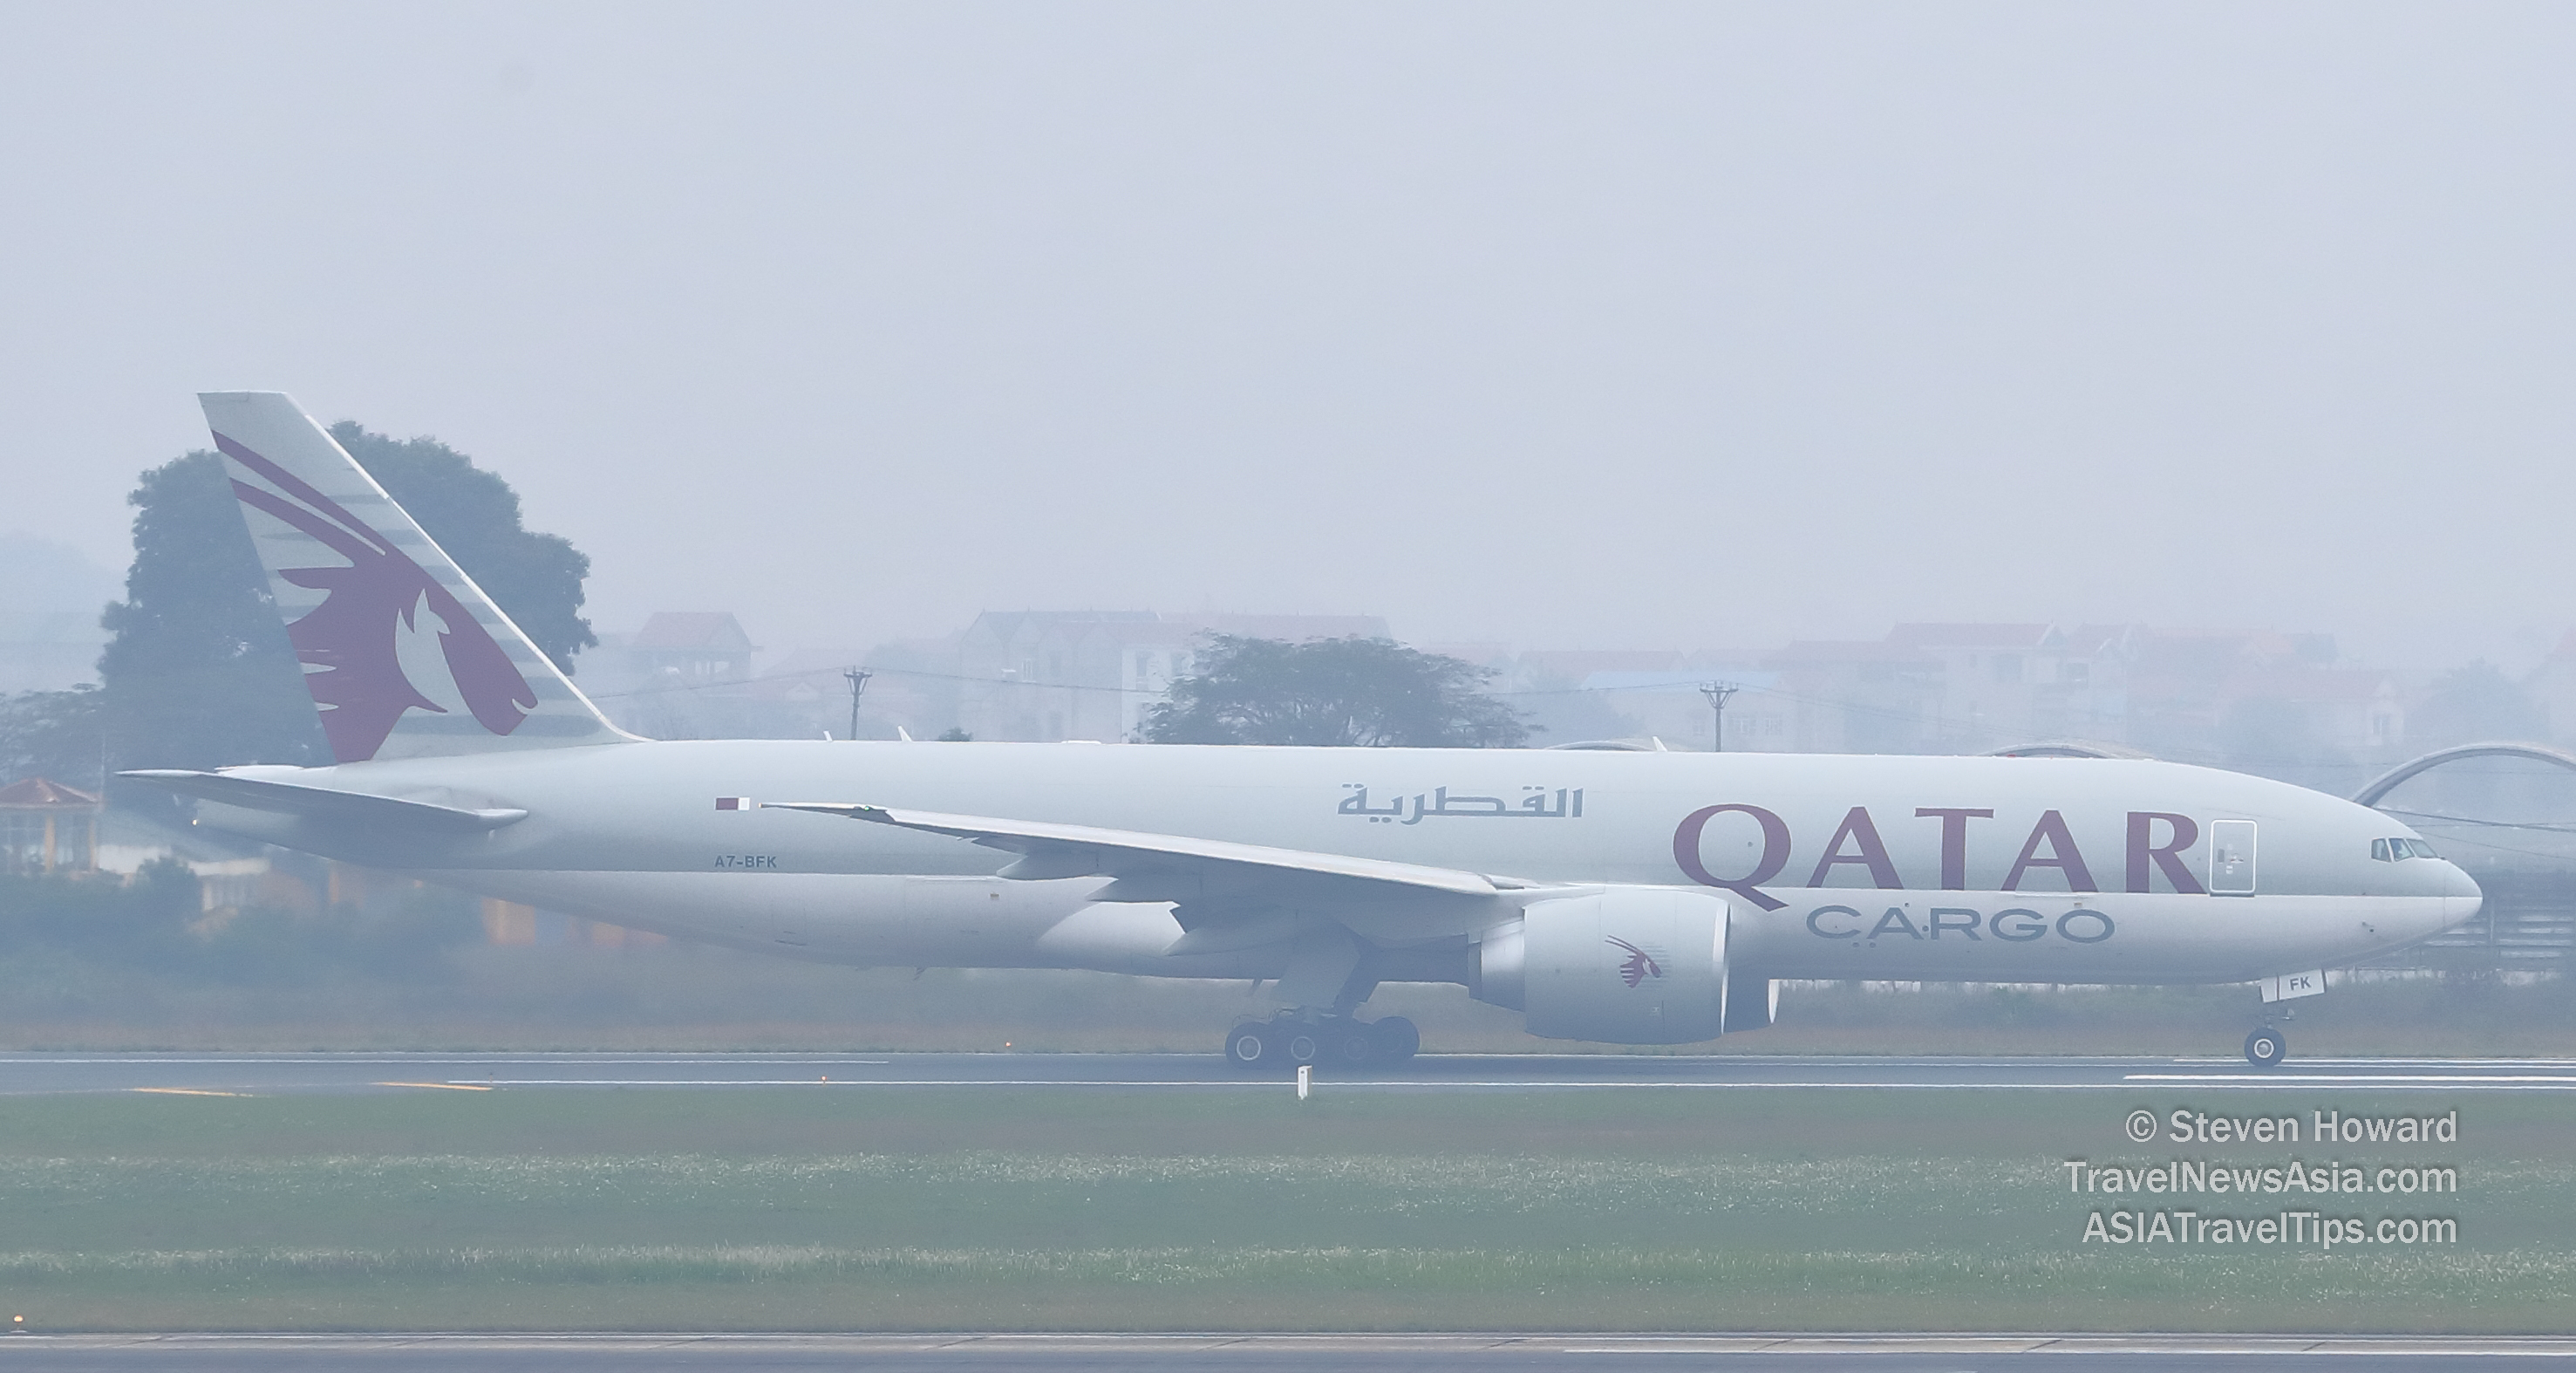 Qatar Airways Cargo Boeing 777F reg: A7-BFK on a very foggy day in Hanoi, Vietnam. Picture by Steven Howard of TravelNewsAsia.com Click to enlarge.